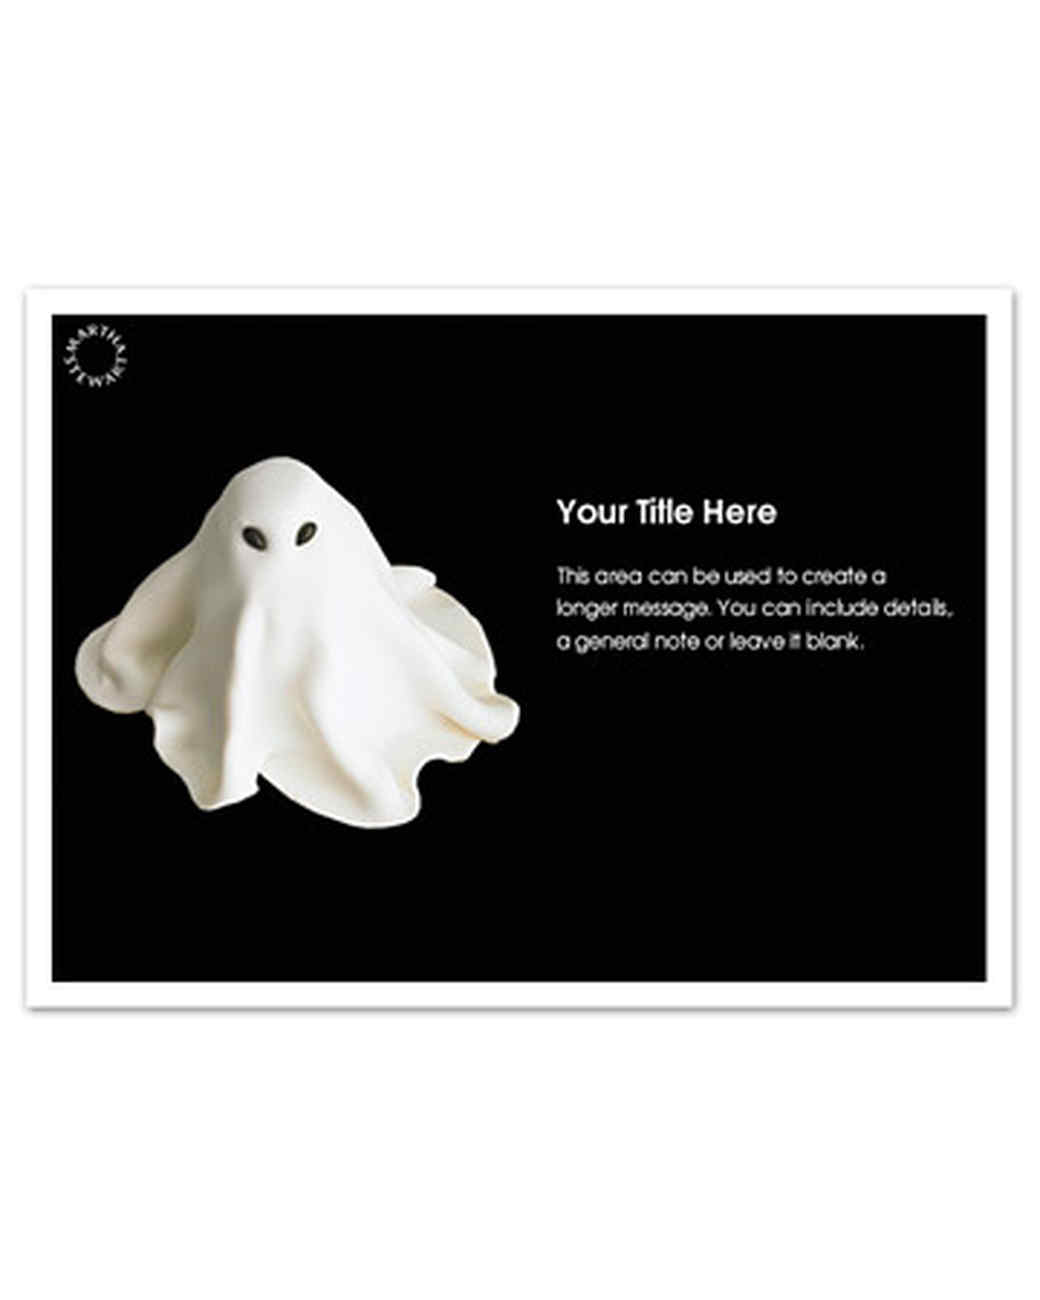 Online Invitations for Your Halloween Party | Martha Stewart